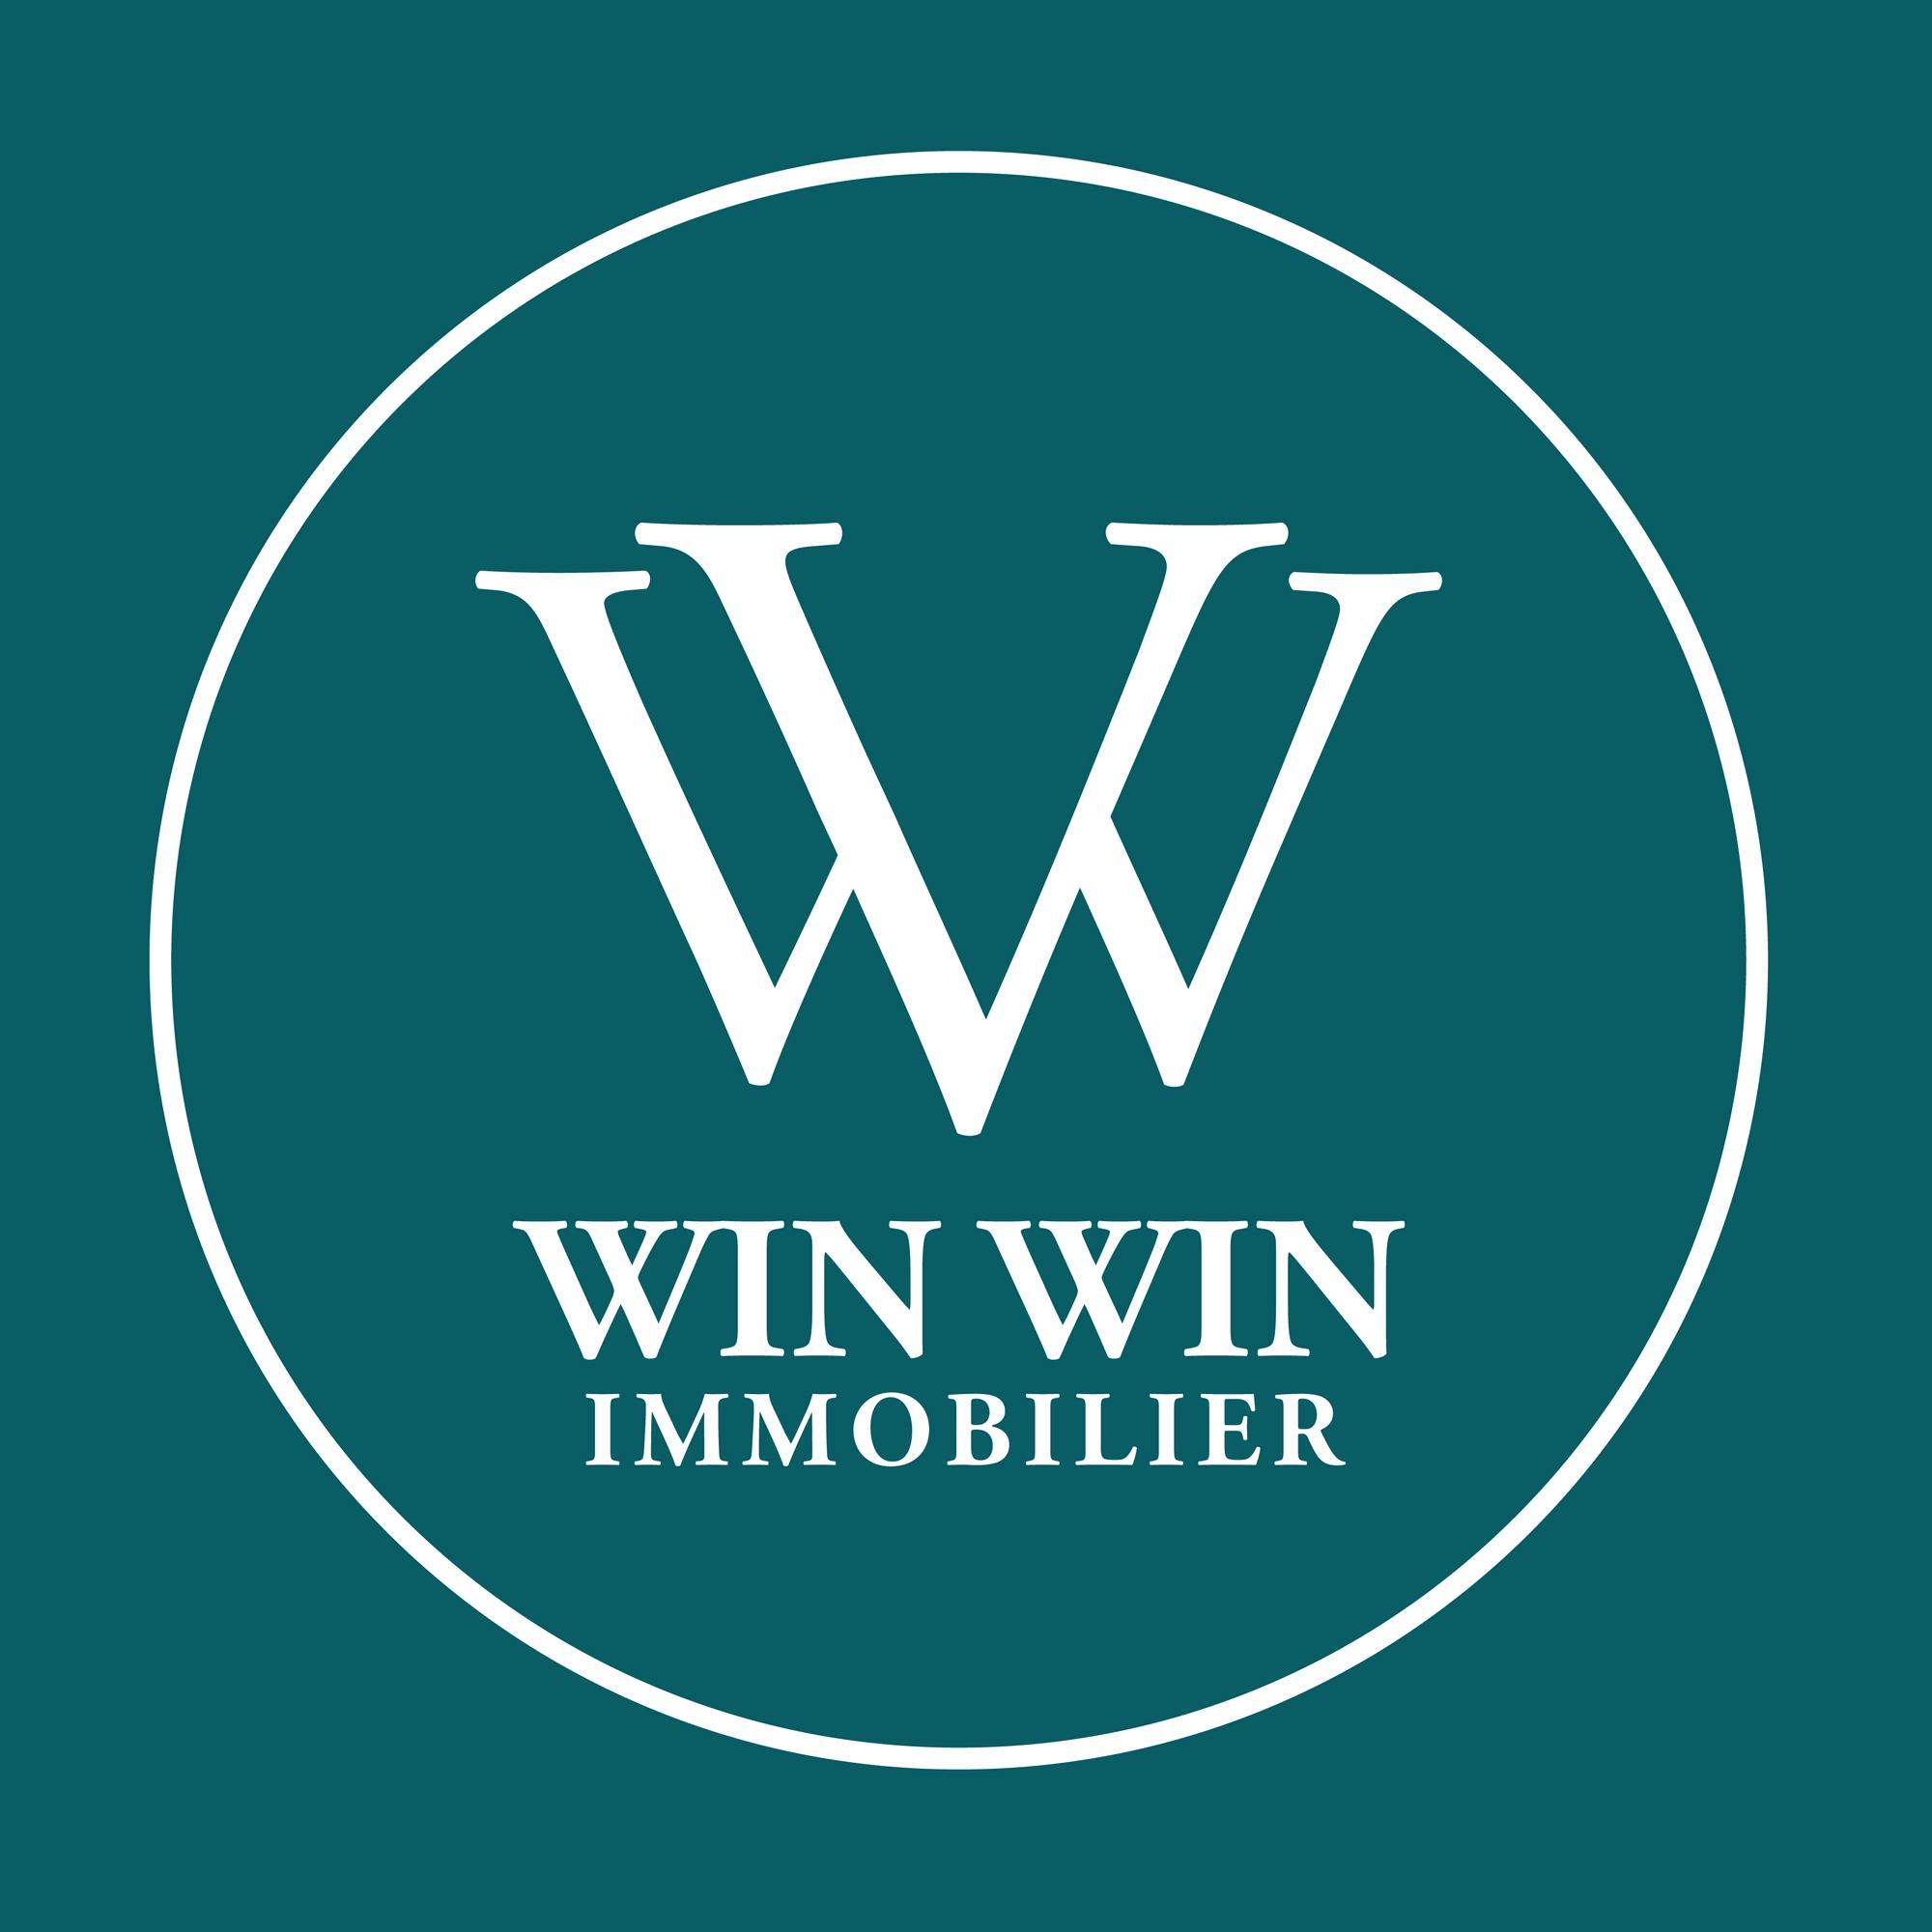 Image de l'agence Win Win Immobilier